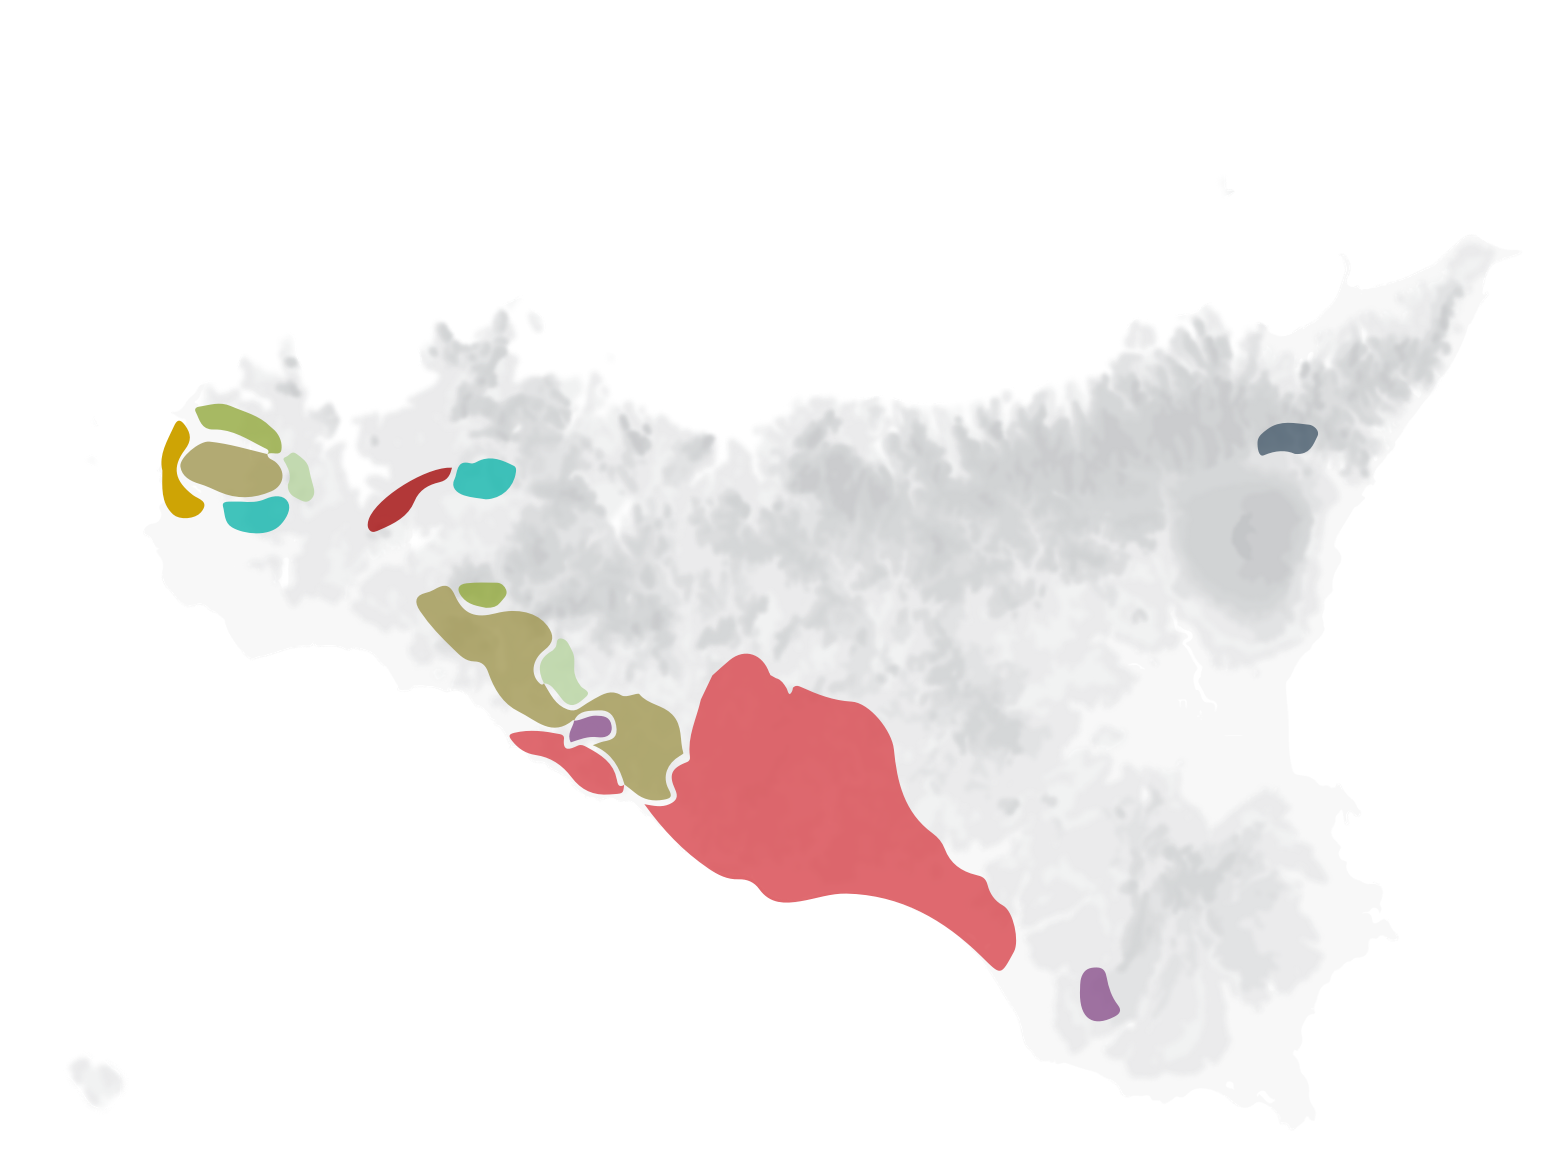 Grape varieties map